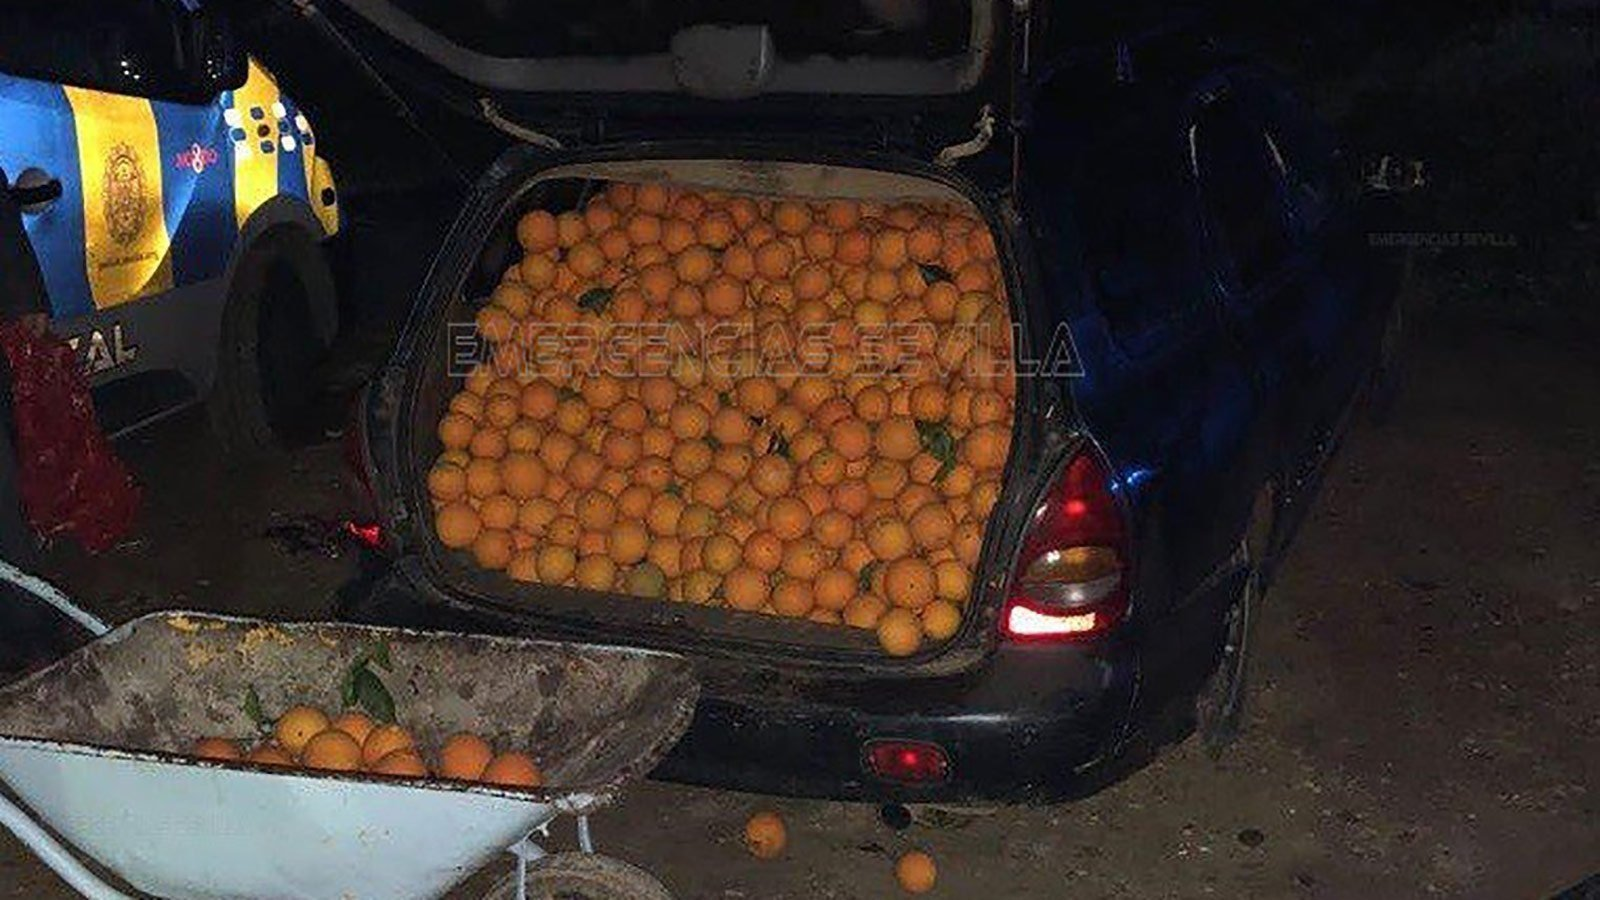 Cops Catch Cars Packed With 4000 Kilos Of Stolen Oranges